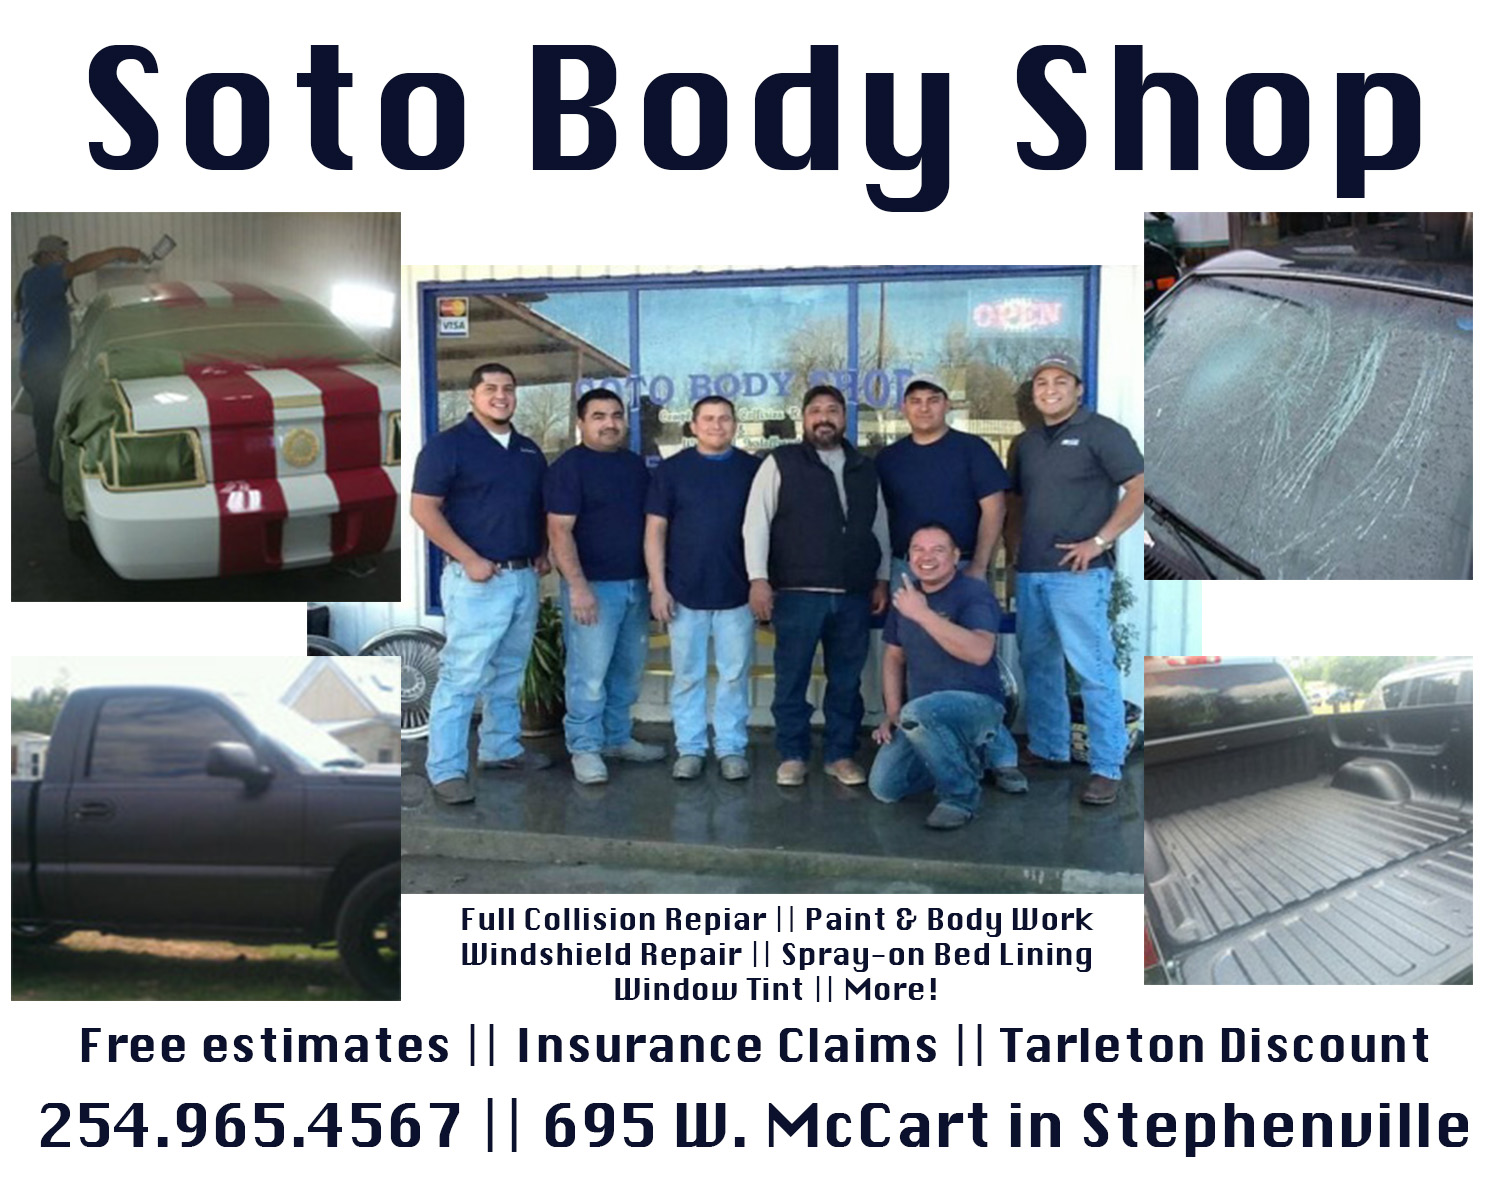 Soto Body Shop Ad